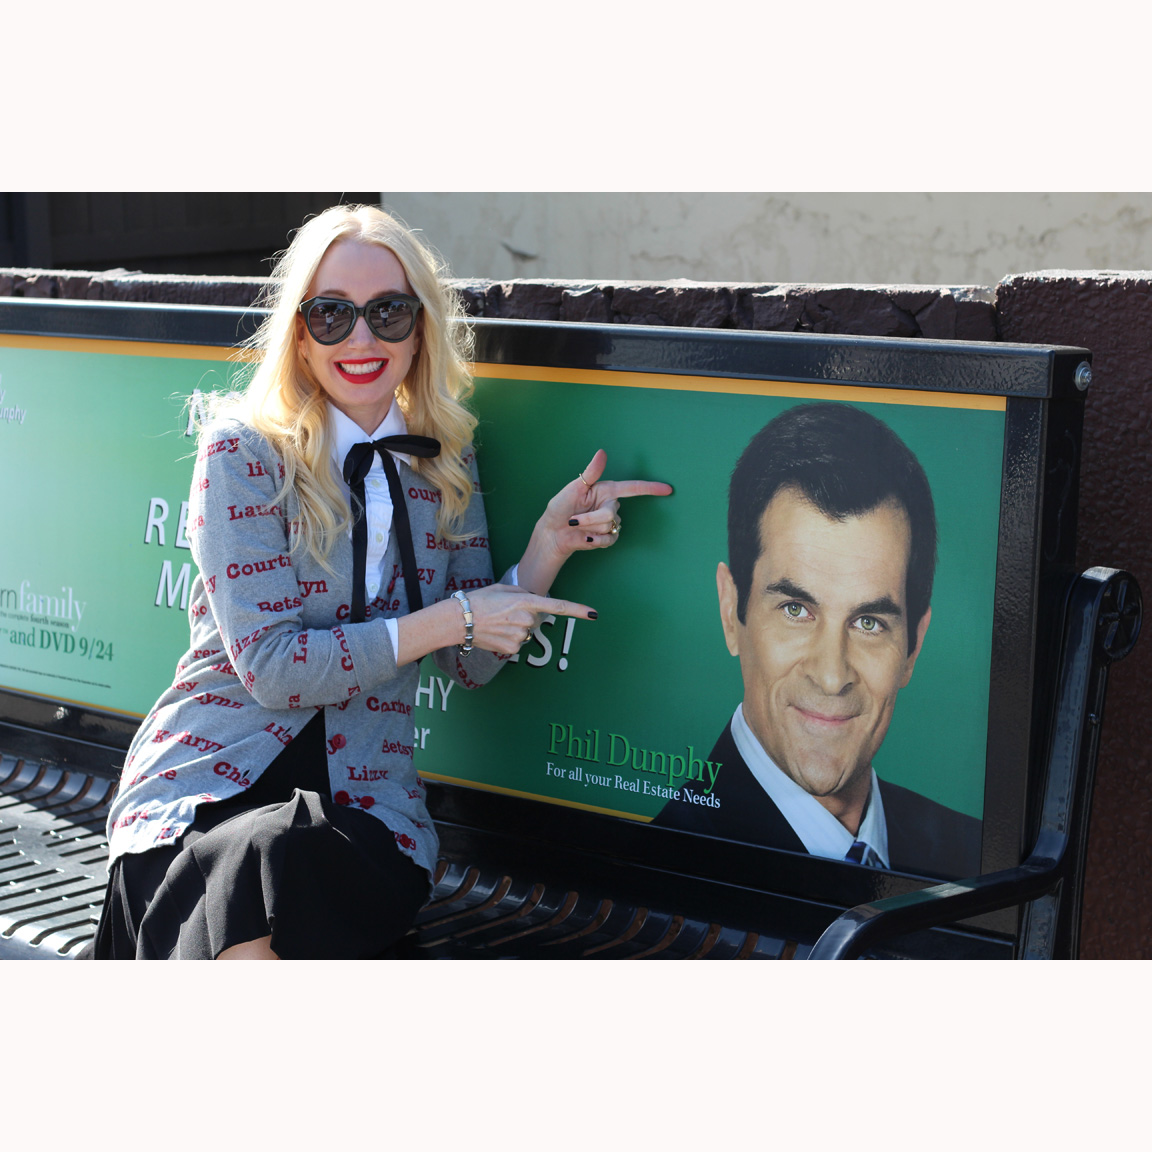 Phil Dunphy, Modern Family bus stop, phil dunphy bench, karen walker number one sunglasses